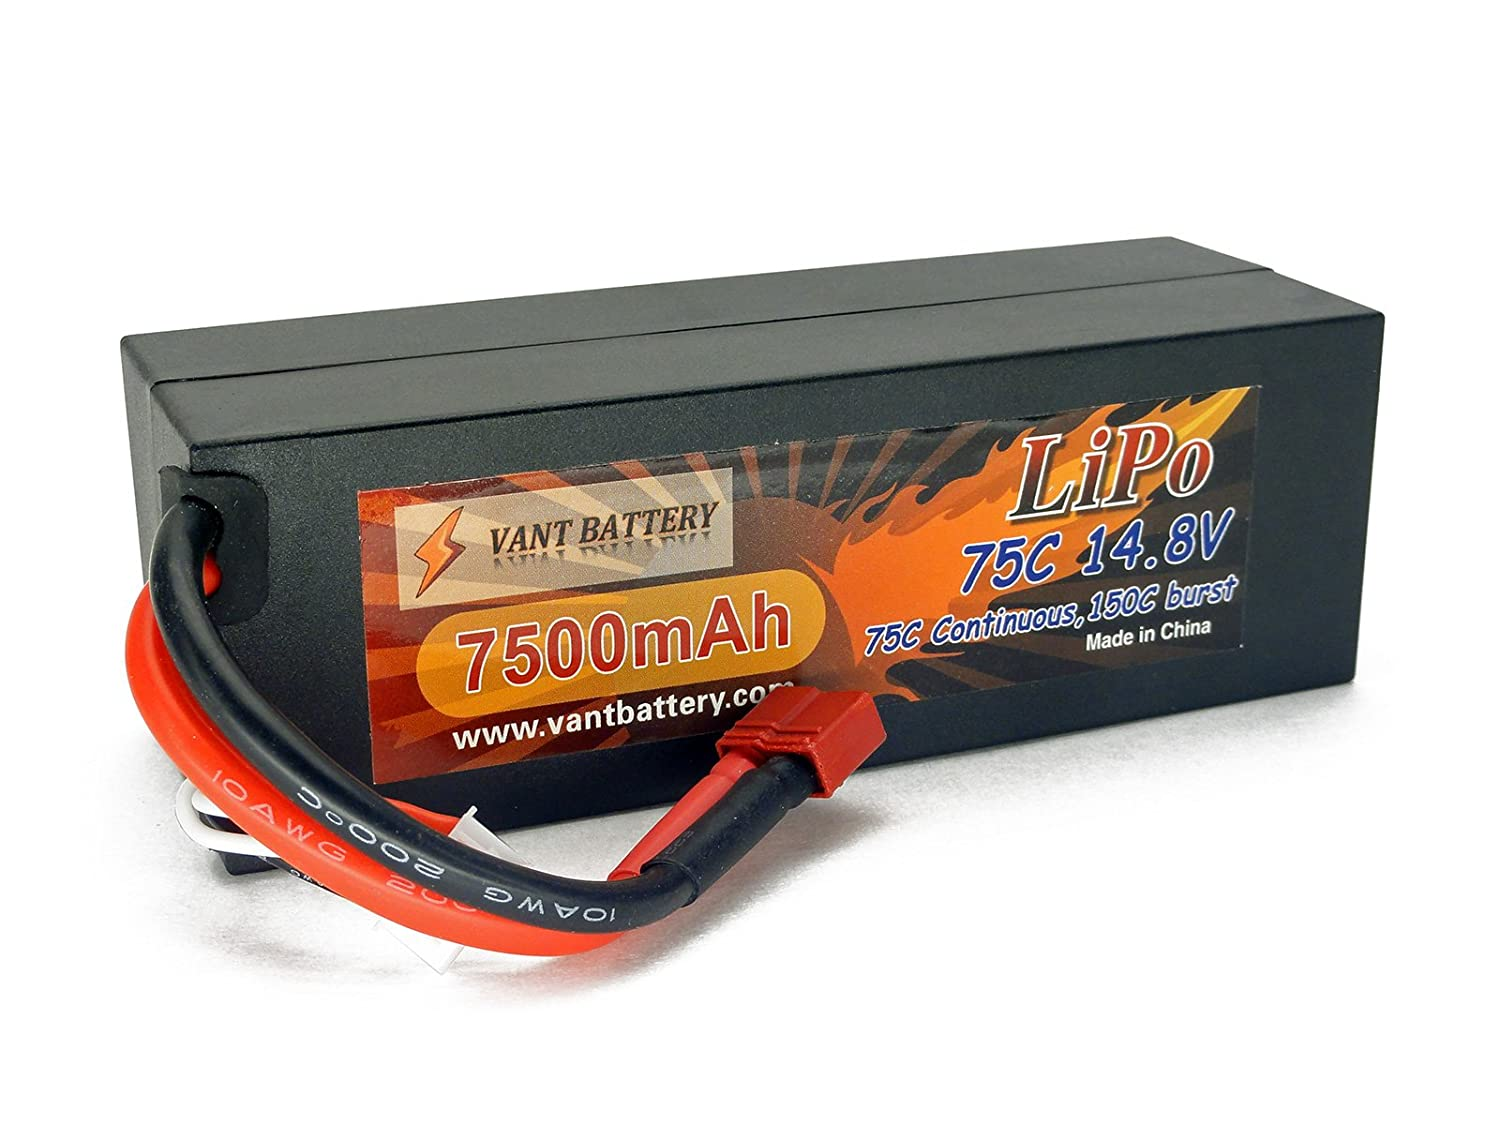 14.8V 7500mAh 4S Cell 75C-150C HardCase LiPo Battery Pack w/ Deans Ultra Style / T-Plug Connector Vant Battery